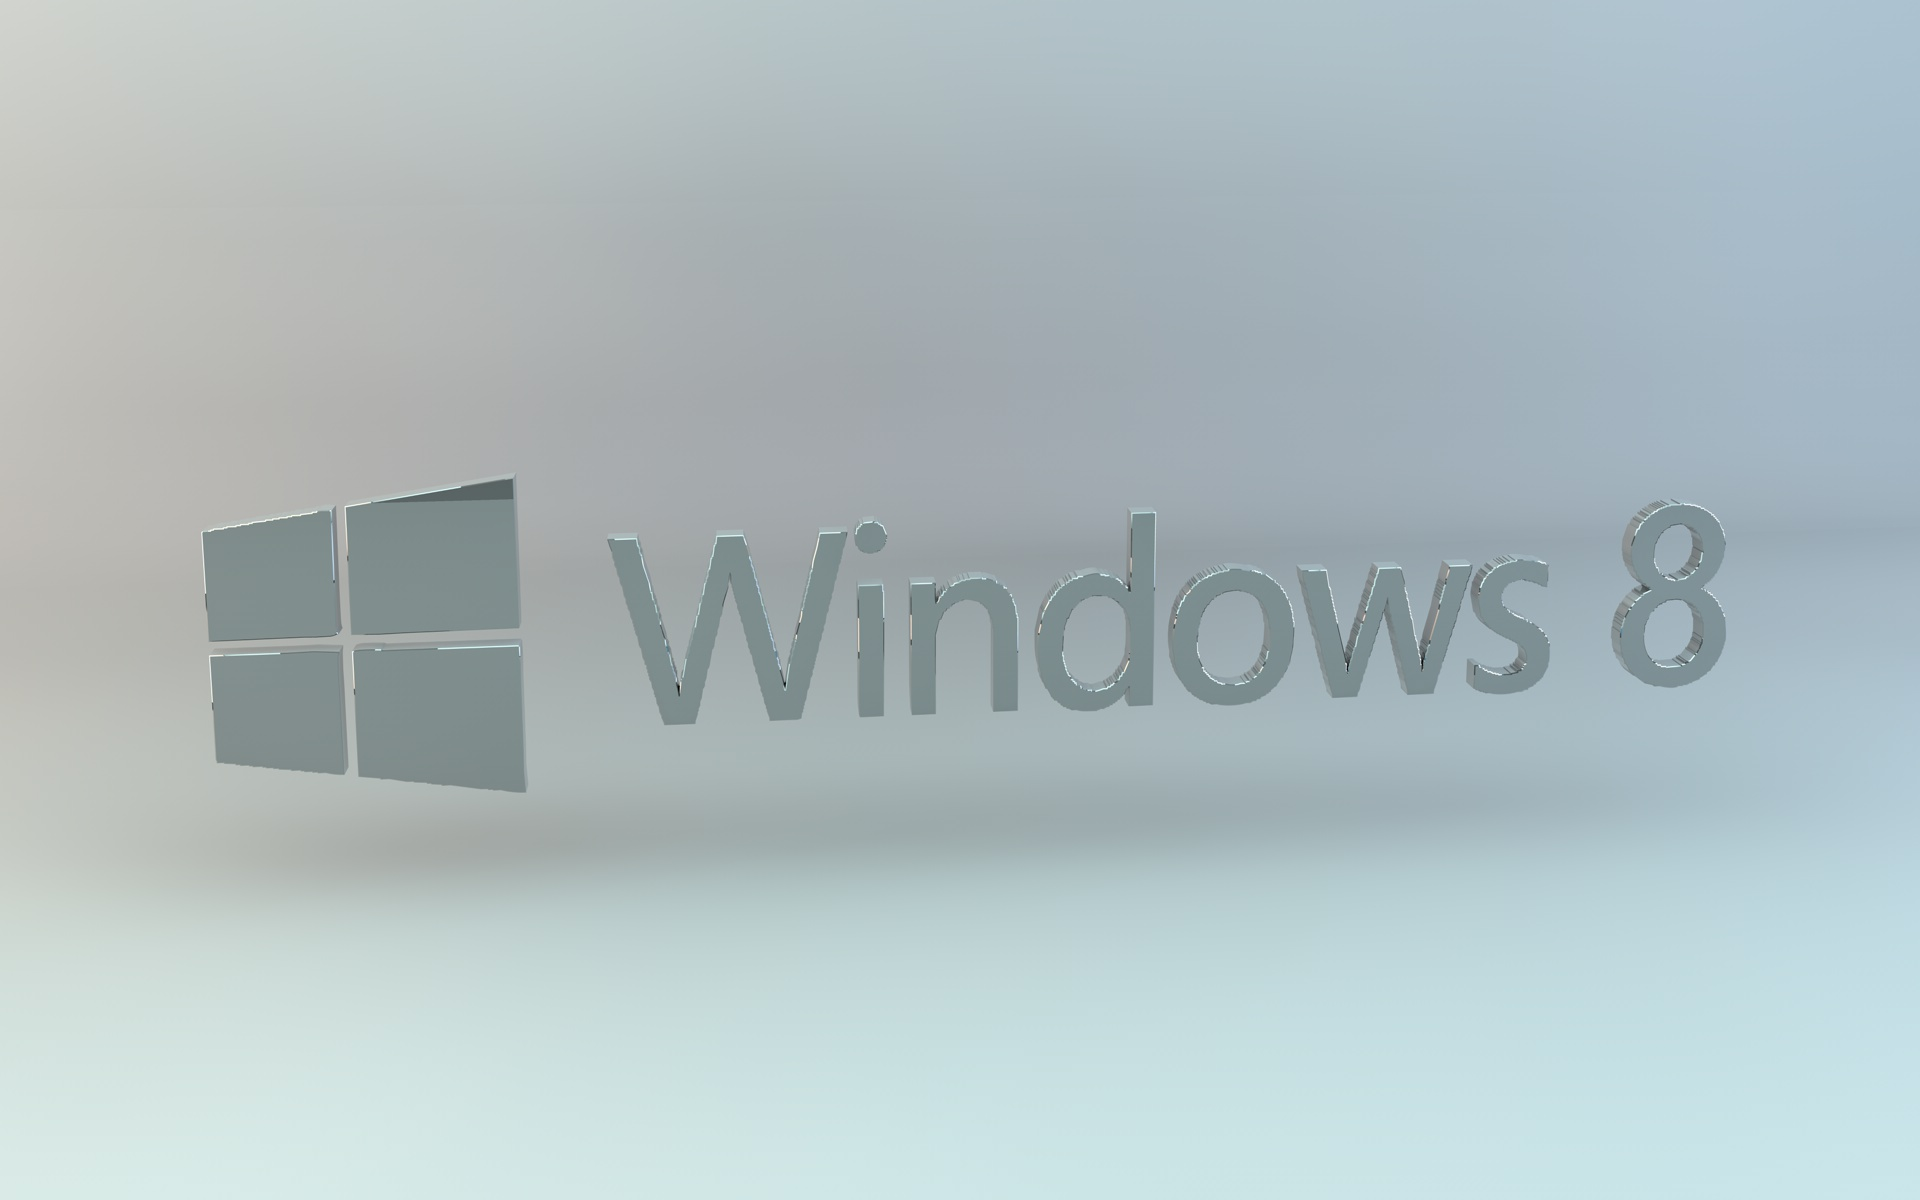 47+] Toshiba Windows 8 Wallpaper on WallpaperSafari